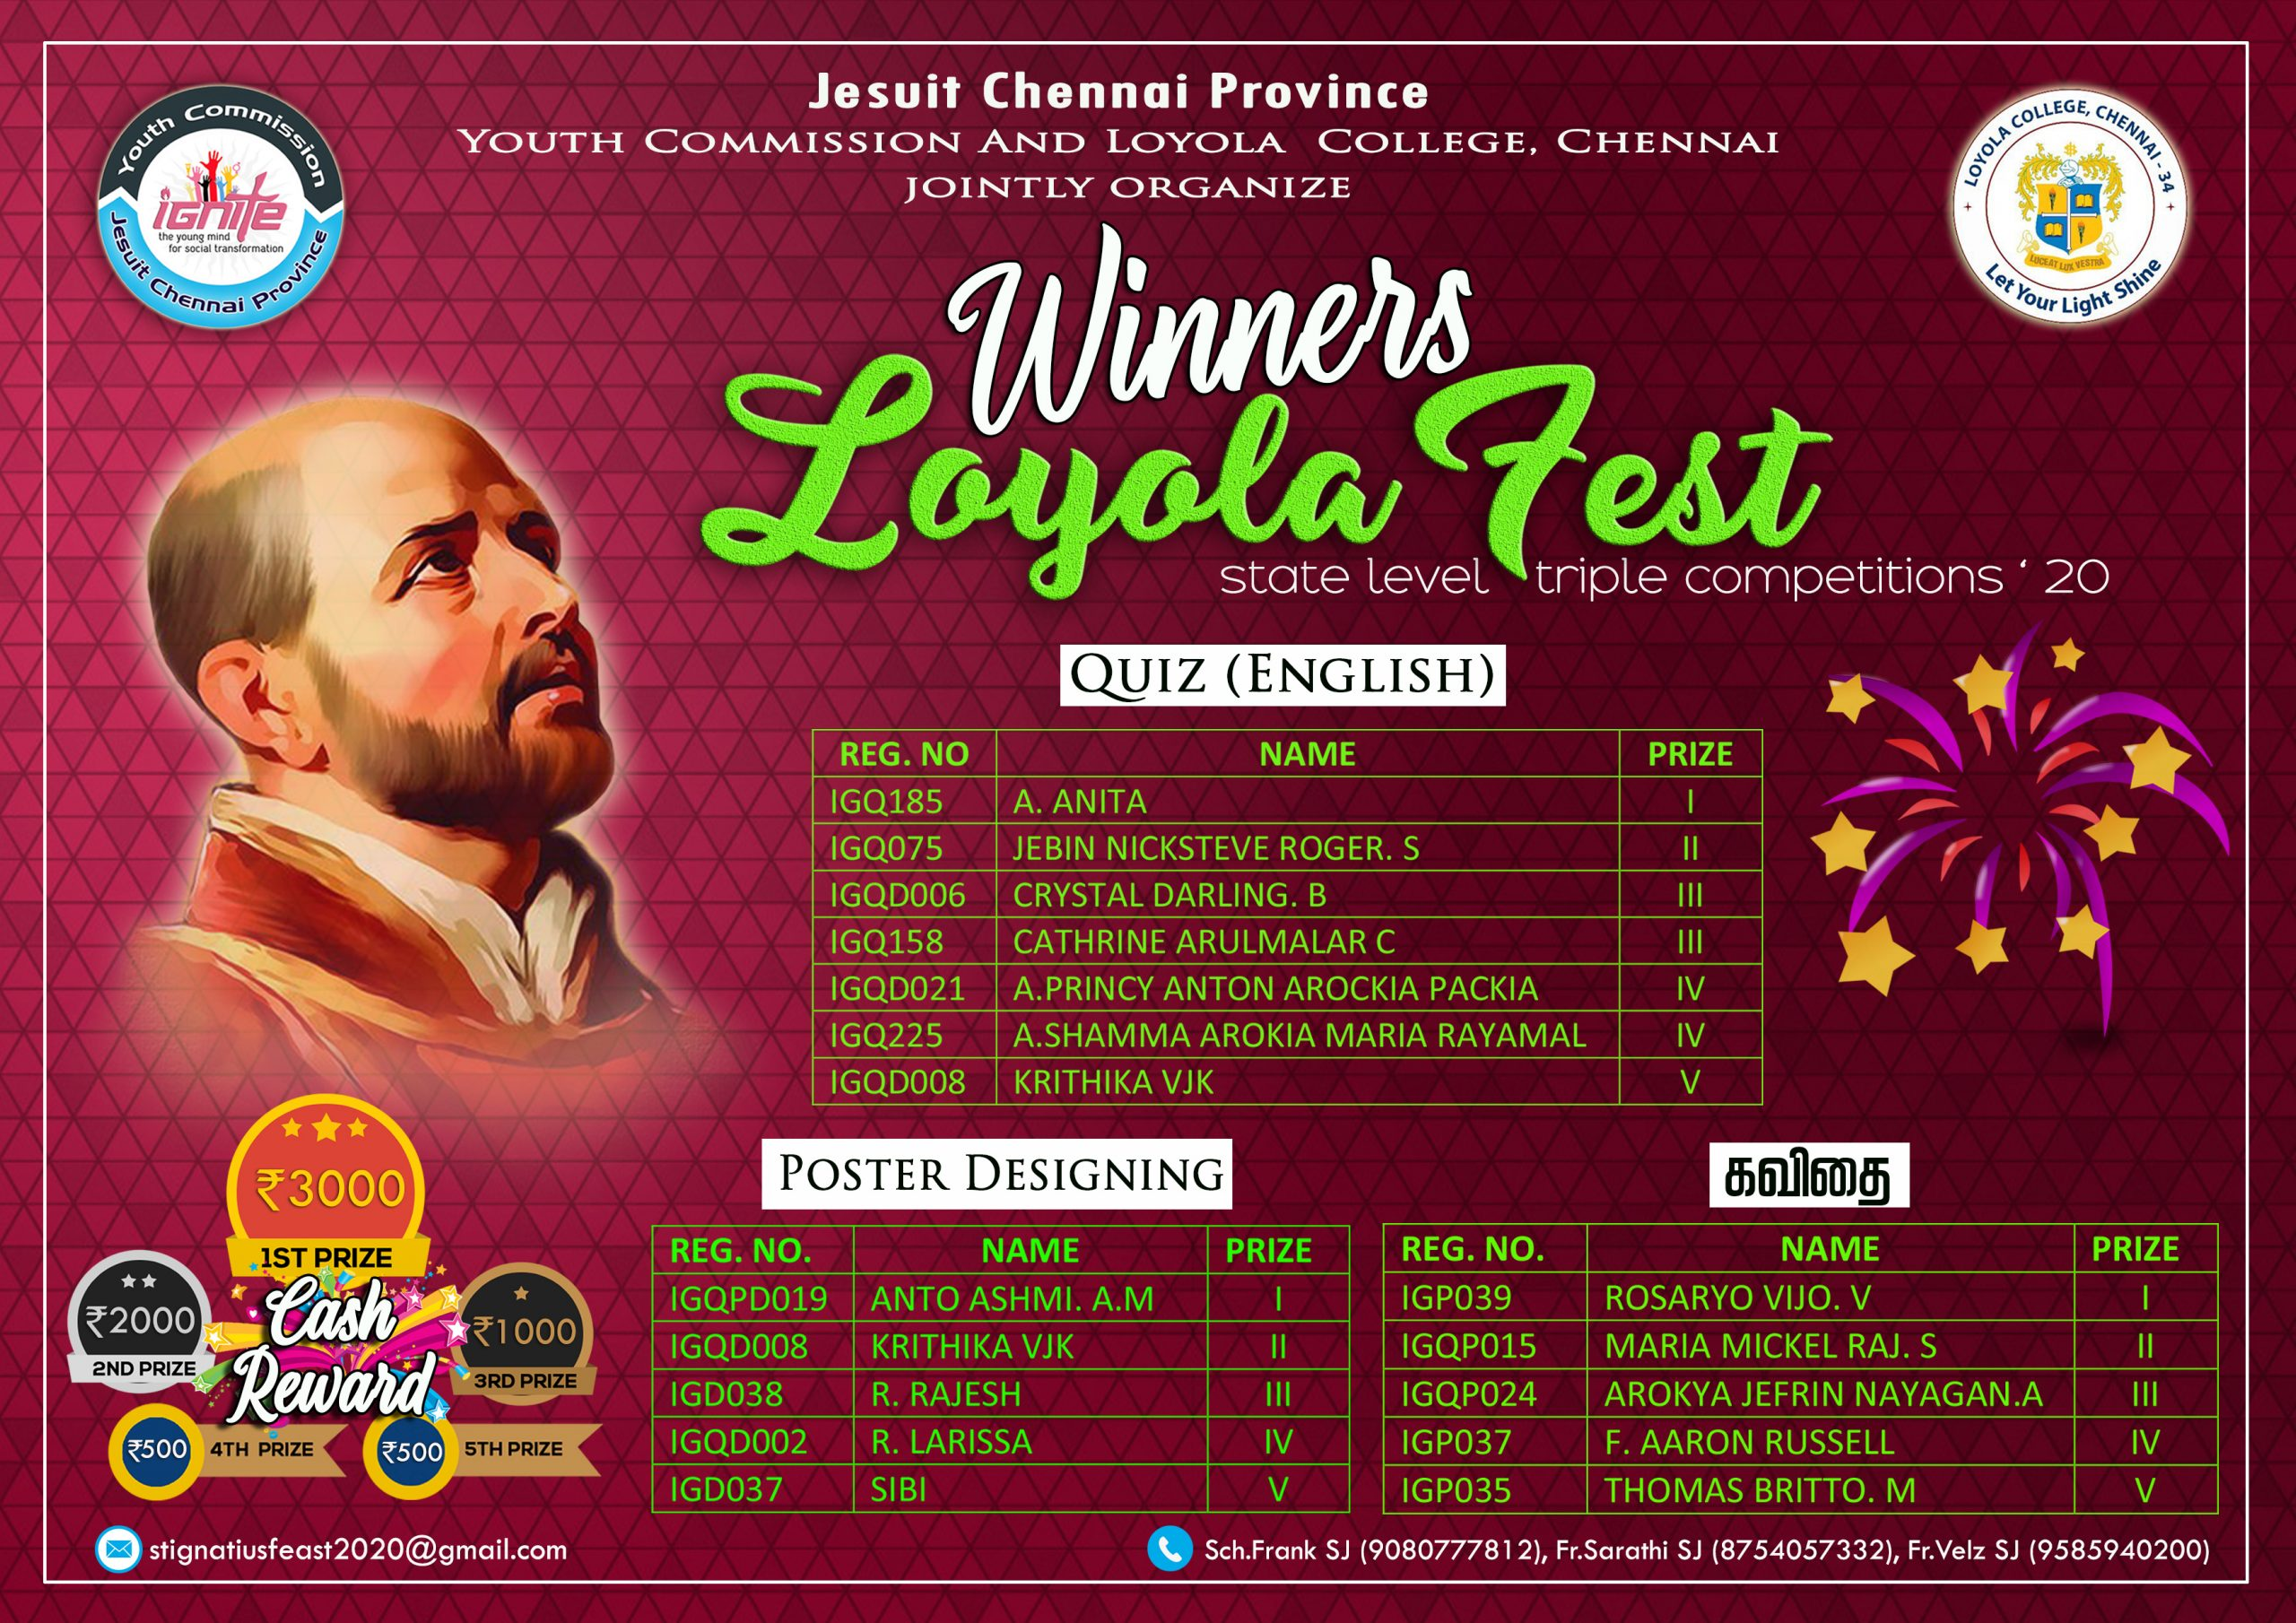 Loyola fest - State level competitions 2020